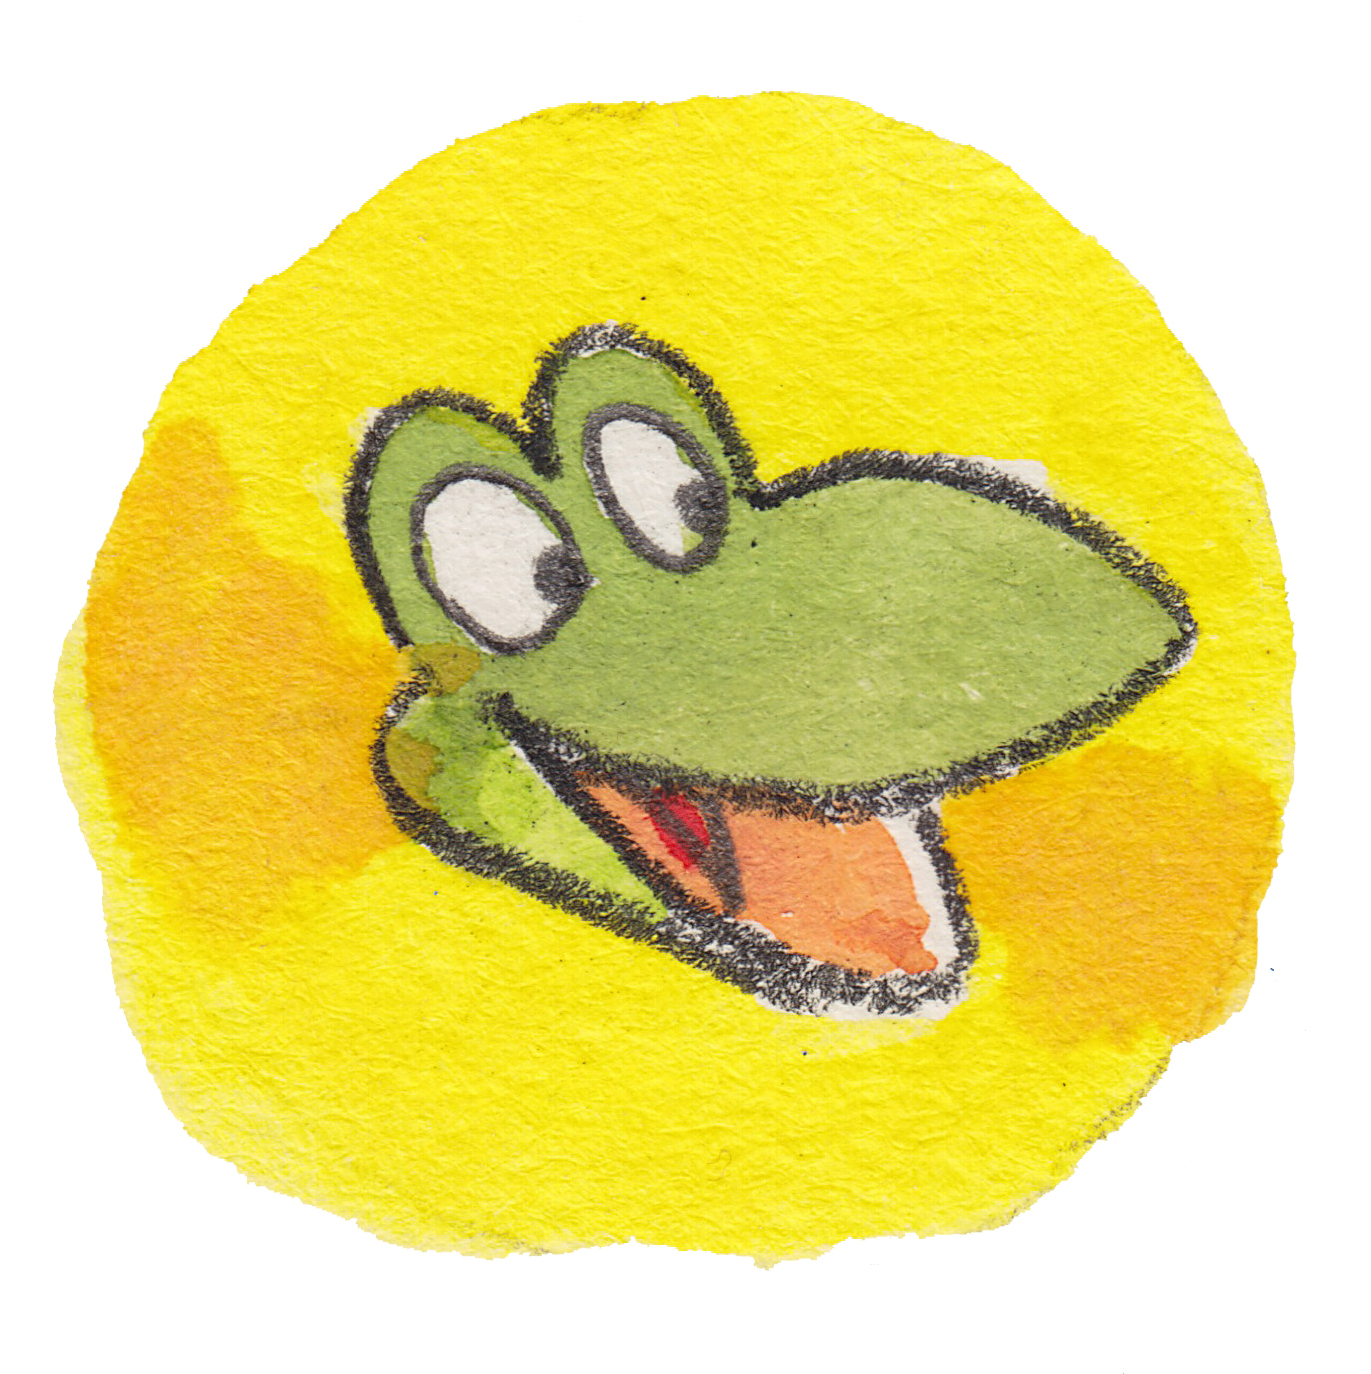 Remkiewicz_Froggy sticker_large_color.jpg